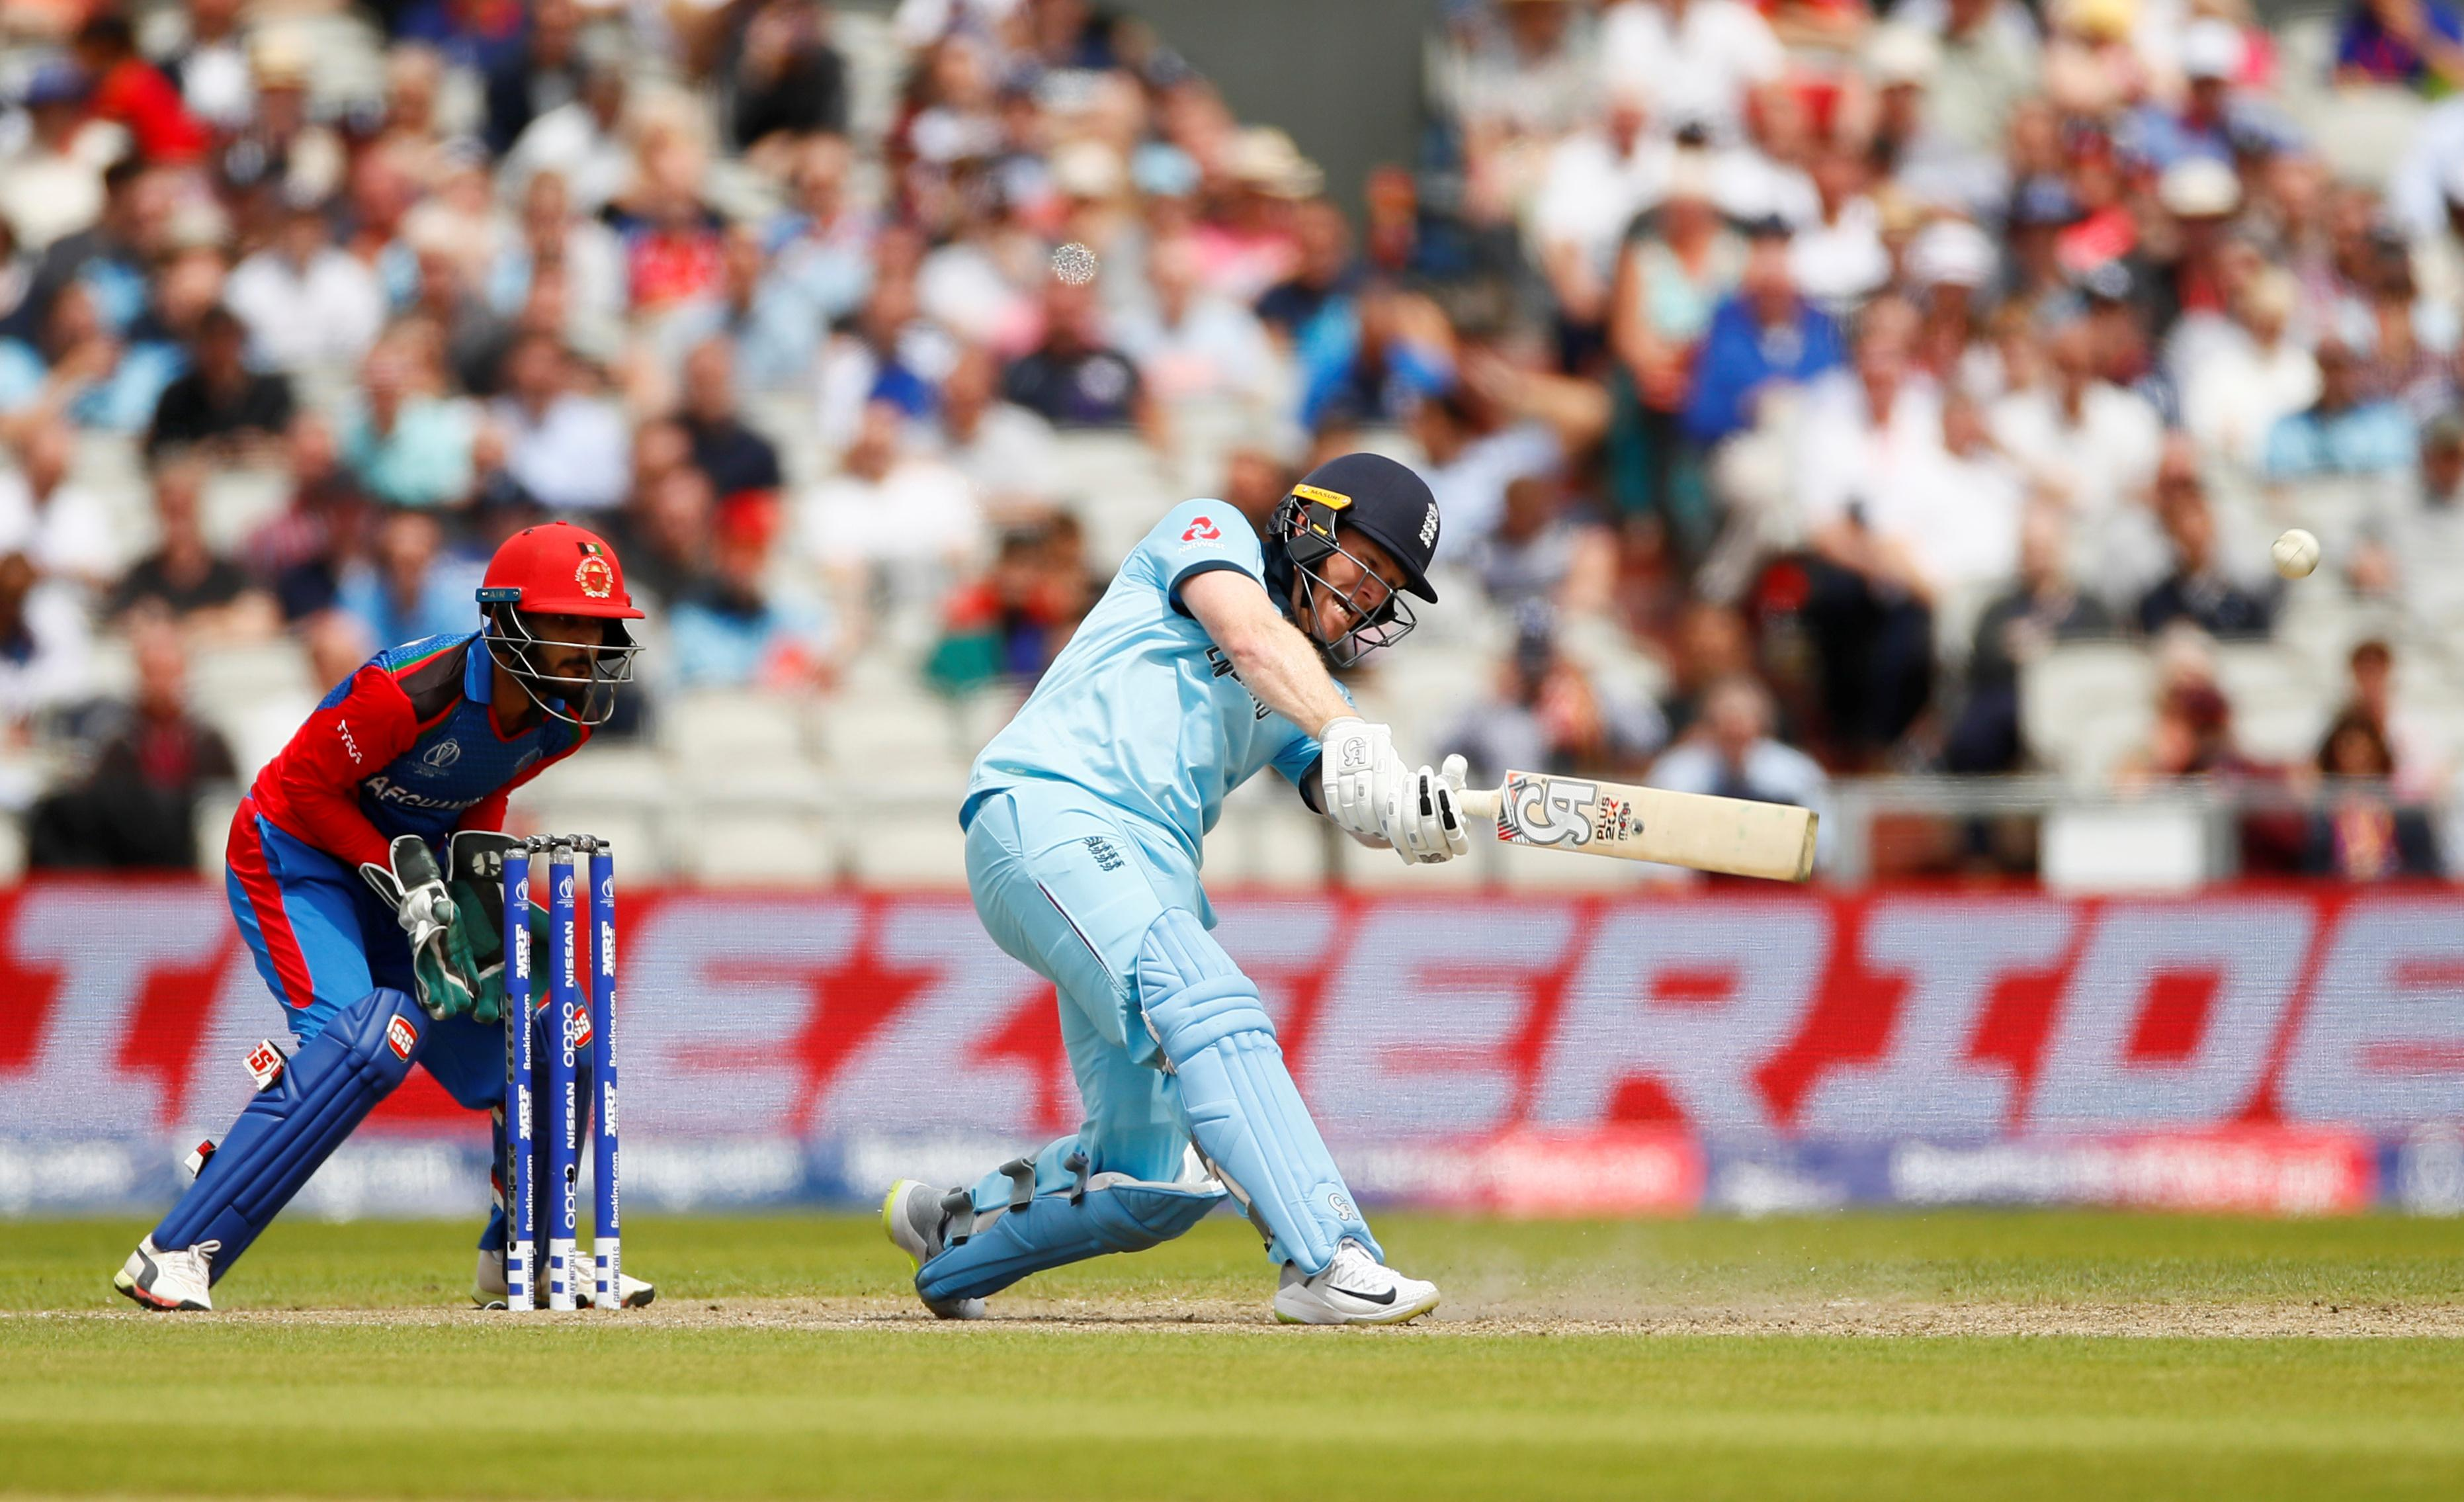 Morgan's record-breaking six-fest helps England crush Afghanistan